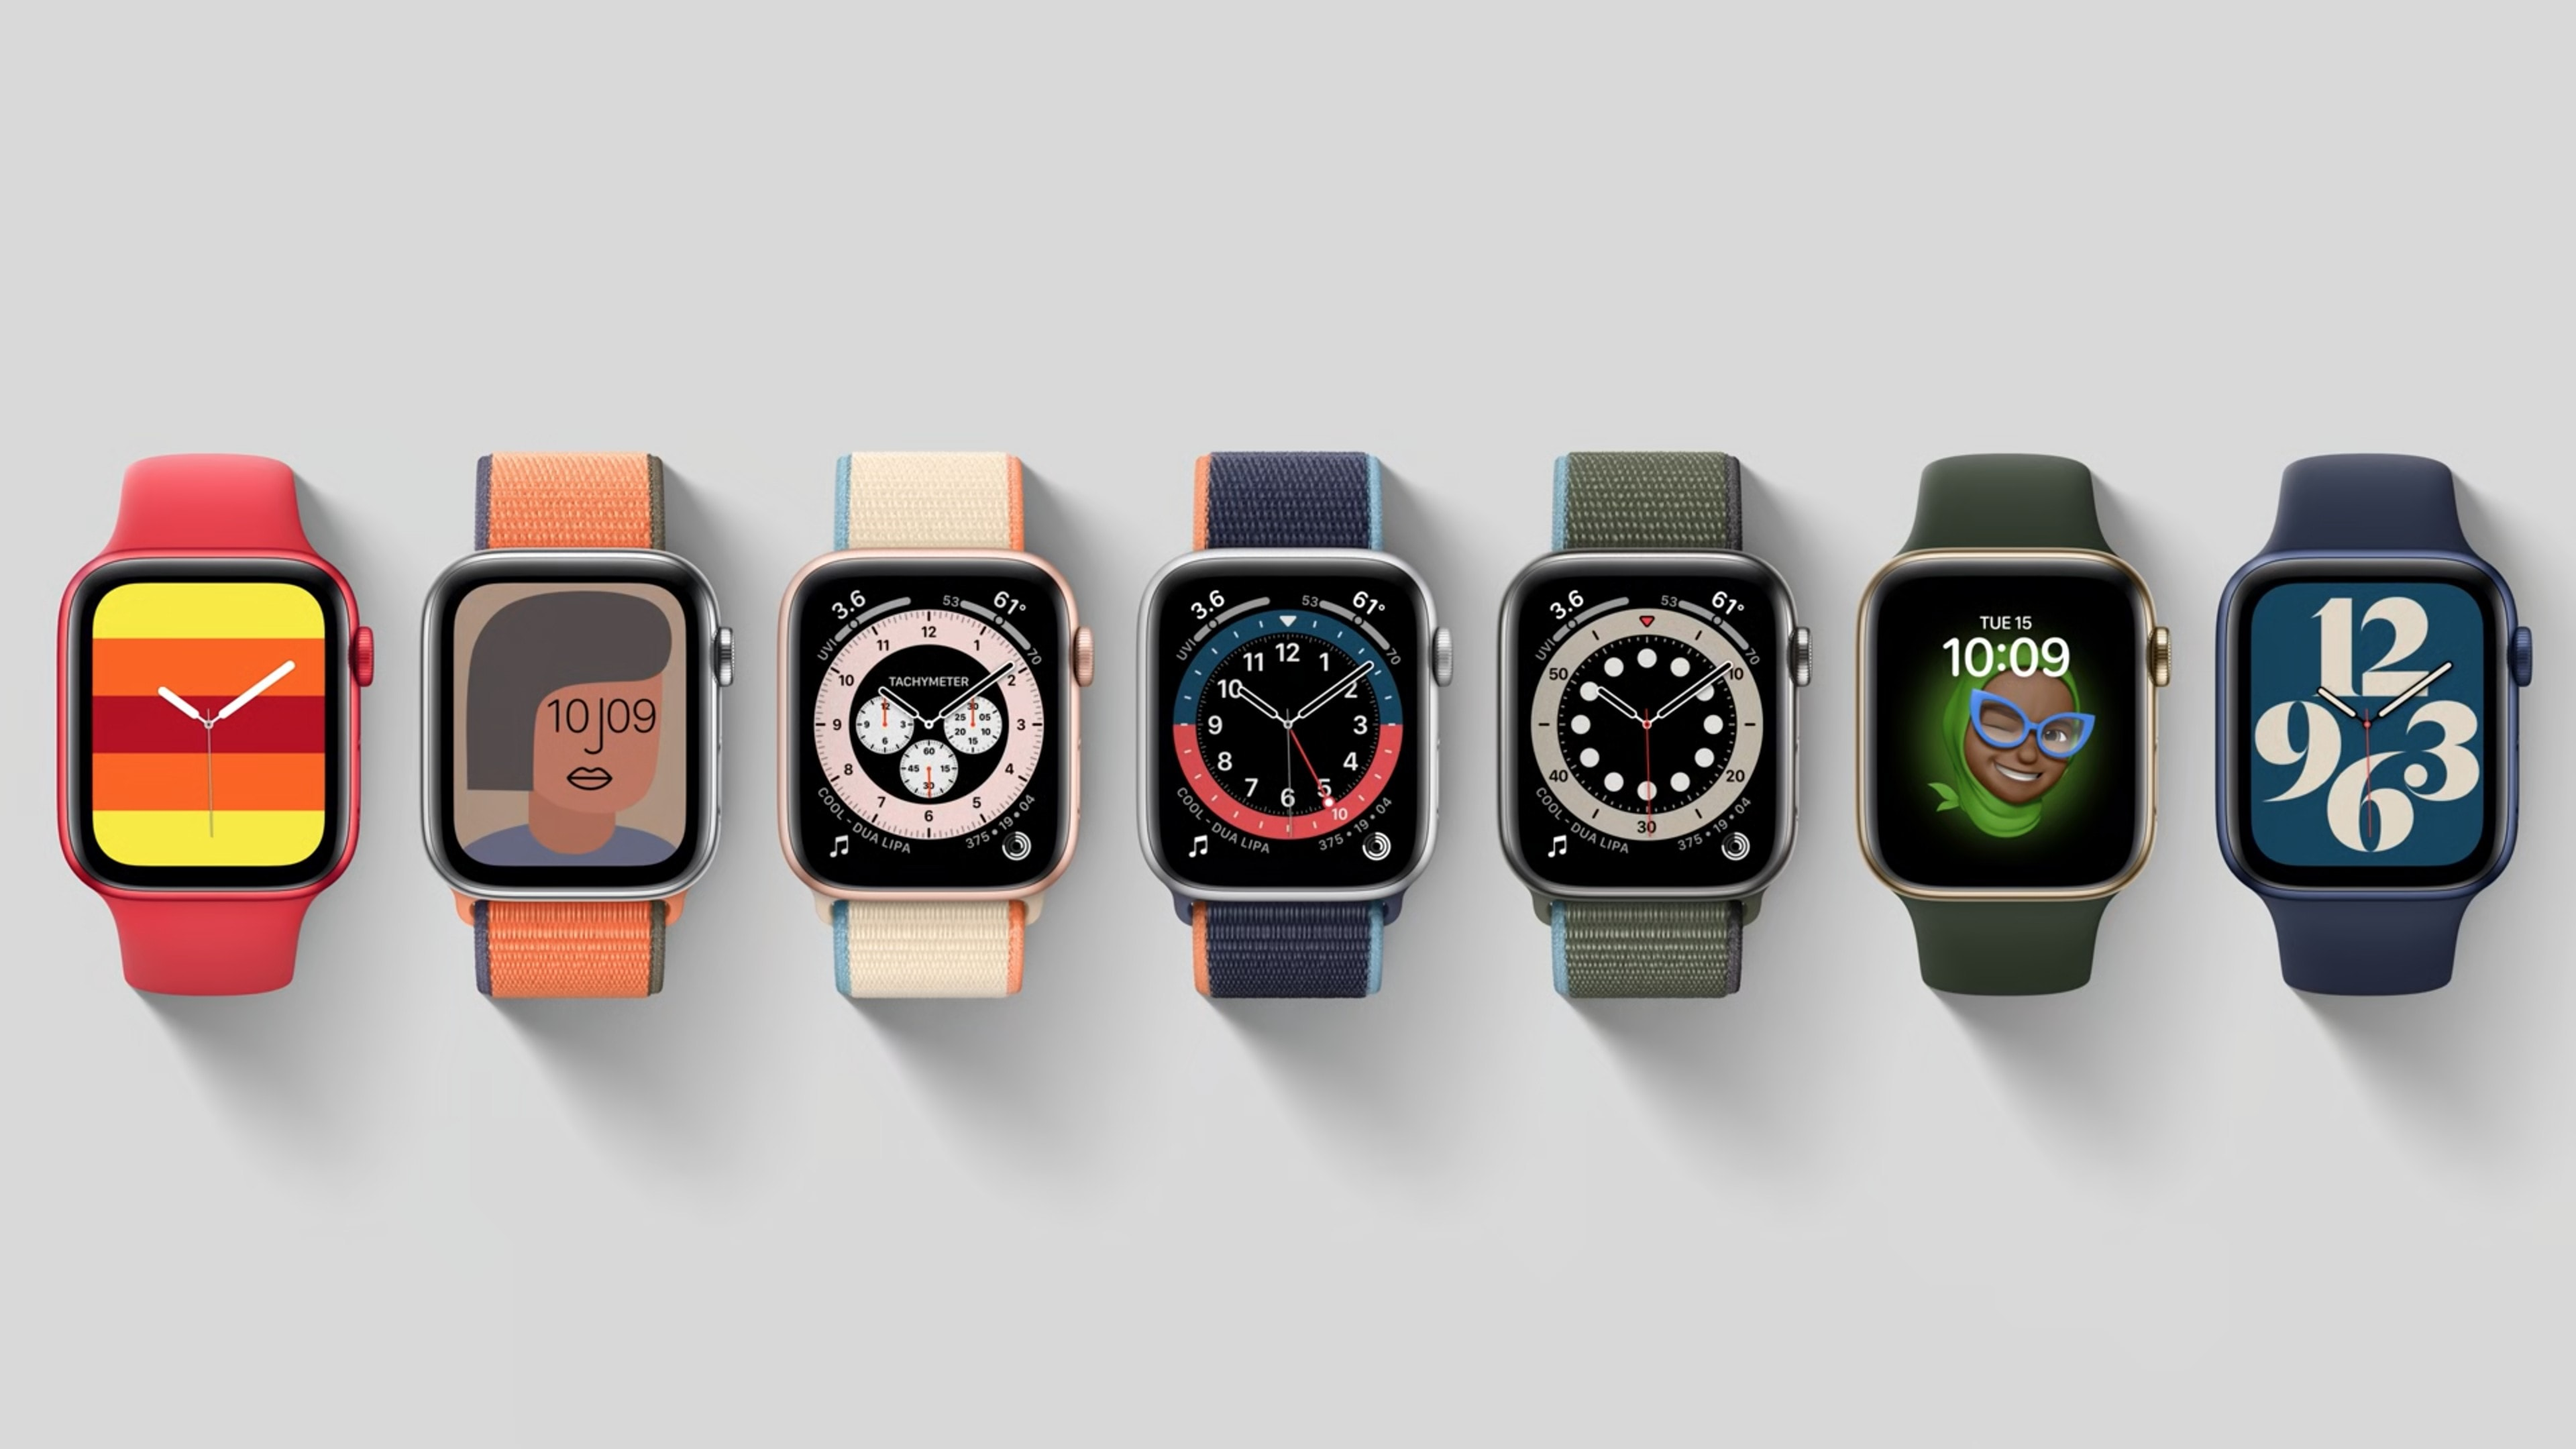 Get ready for new Apple Watch faces!